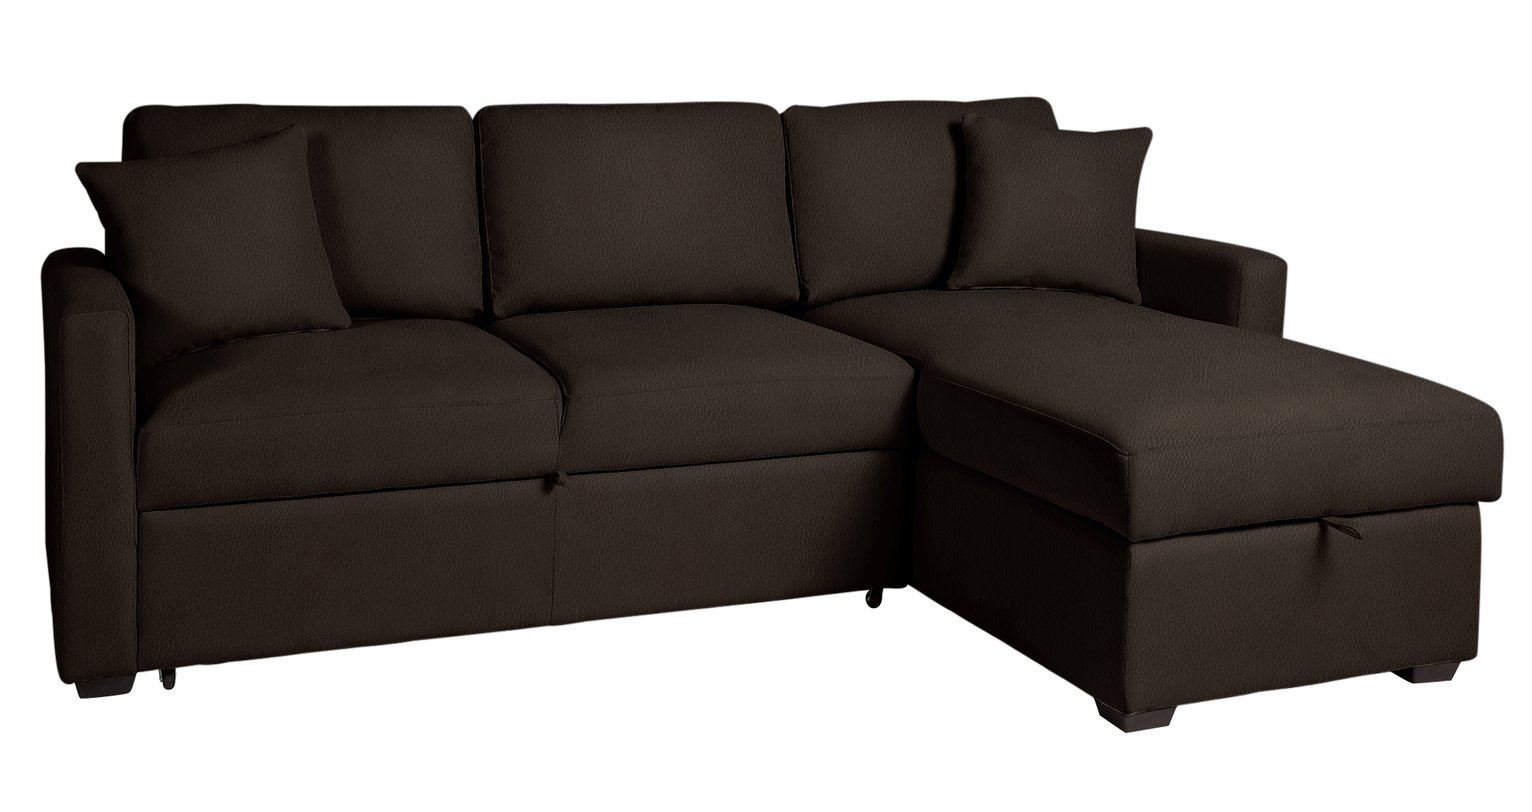 Argos Home Reagan Right Corner Sofa Bed - Dark Brown